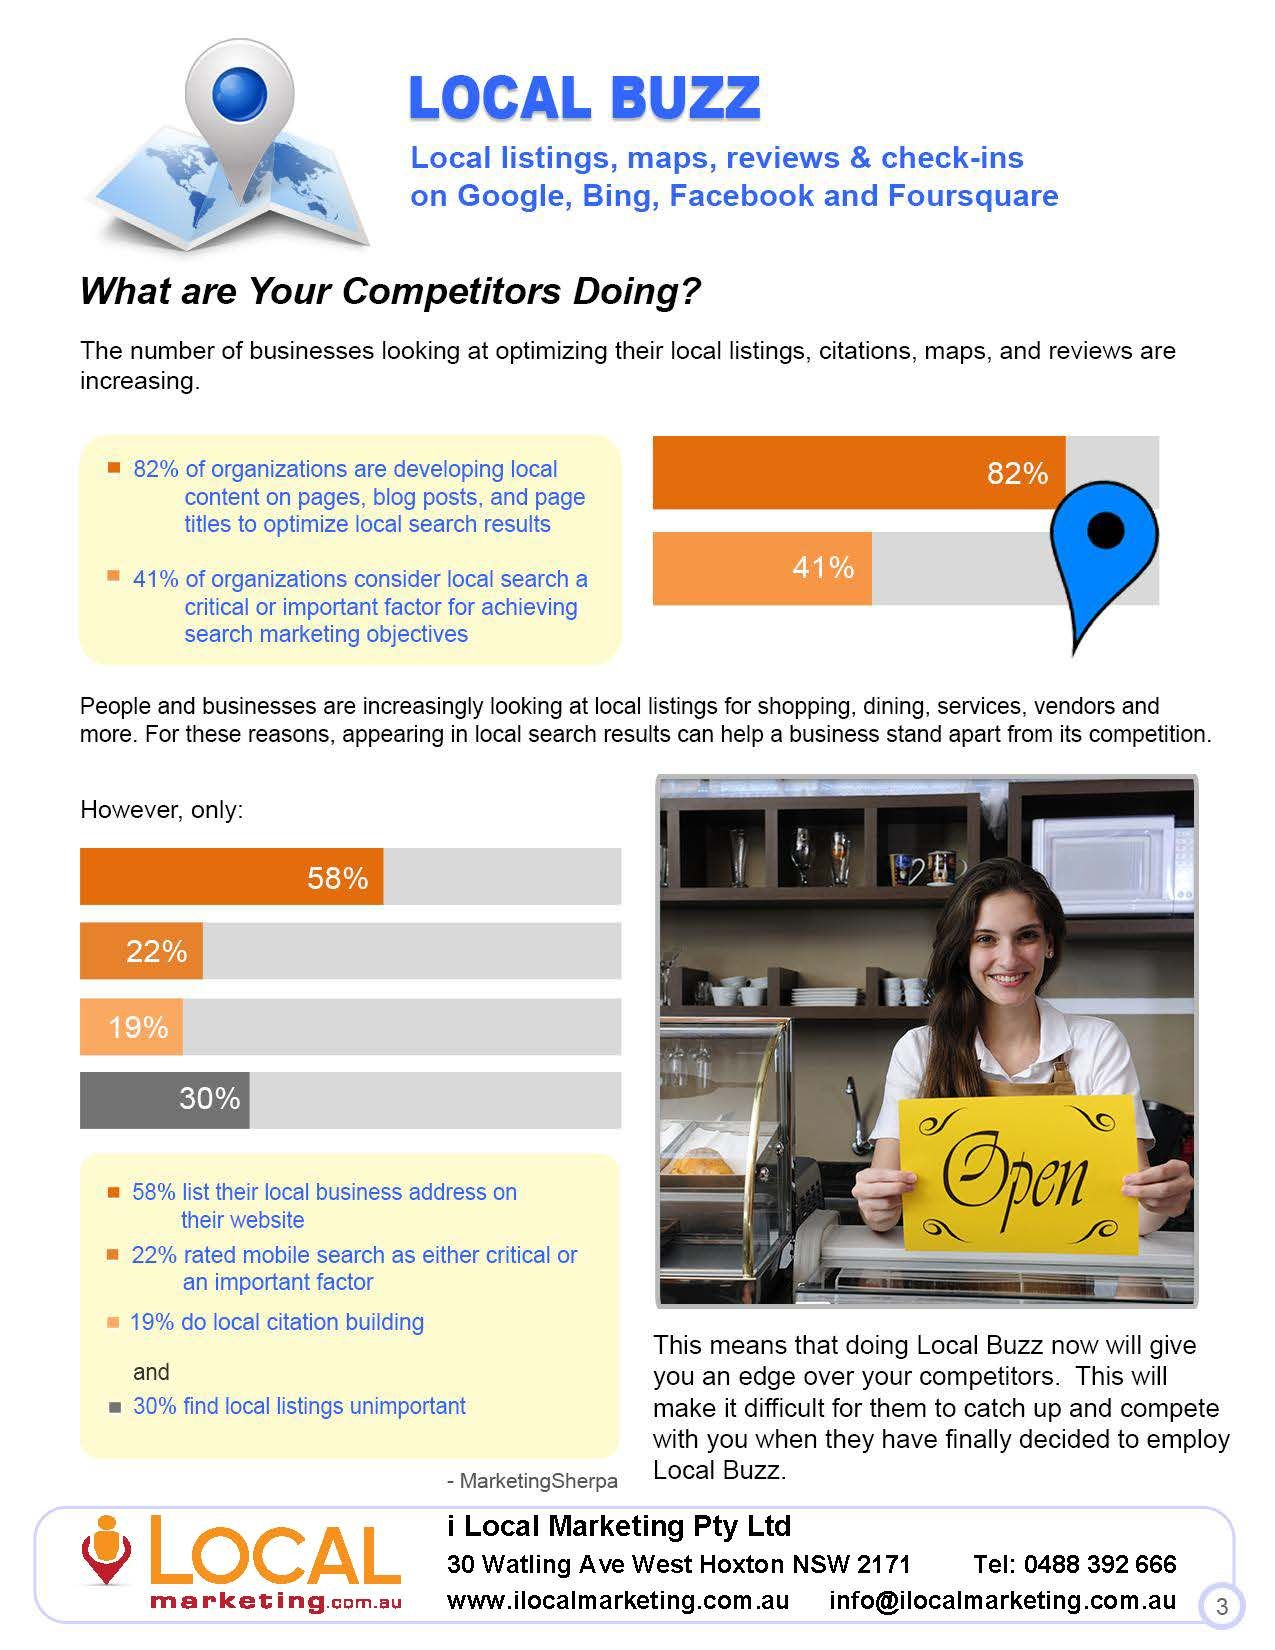 What are Your Competitors Doing? The number of businesses